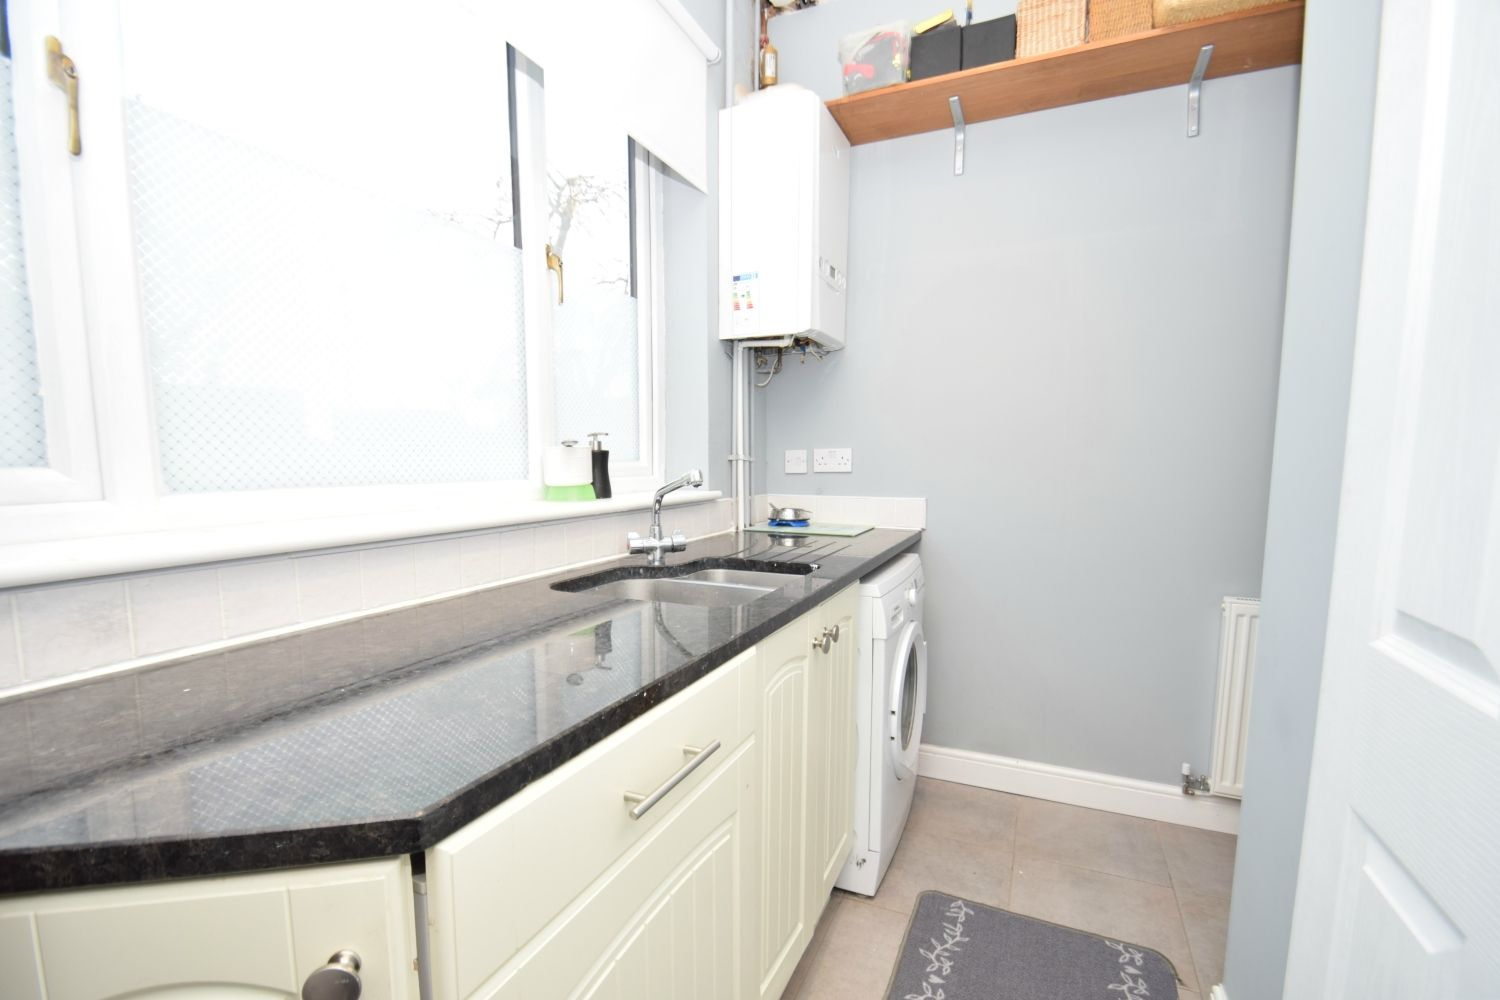 4 bed semi-detached for sale in Upland Grove, Bromsgrove, B61  - Property Image 13